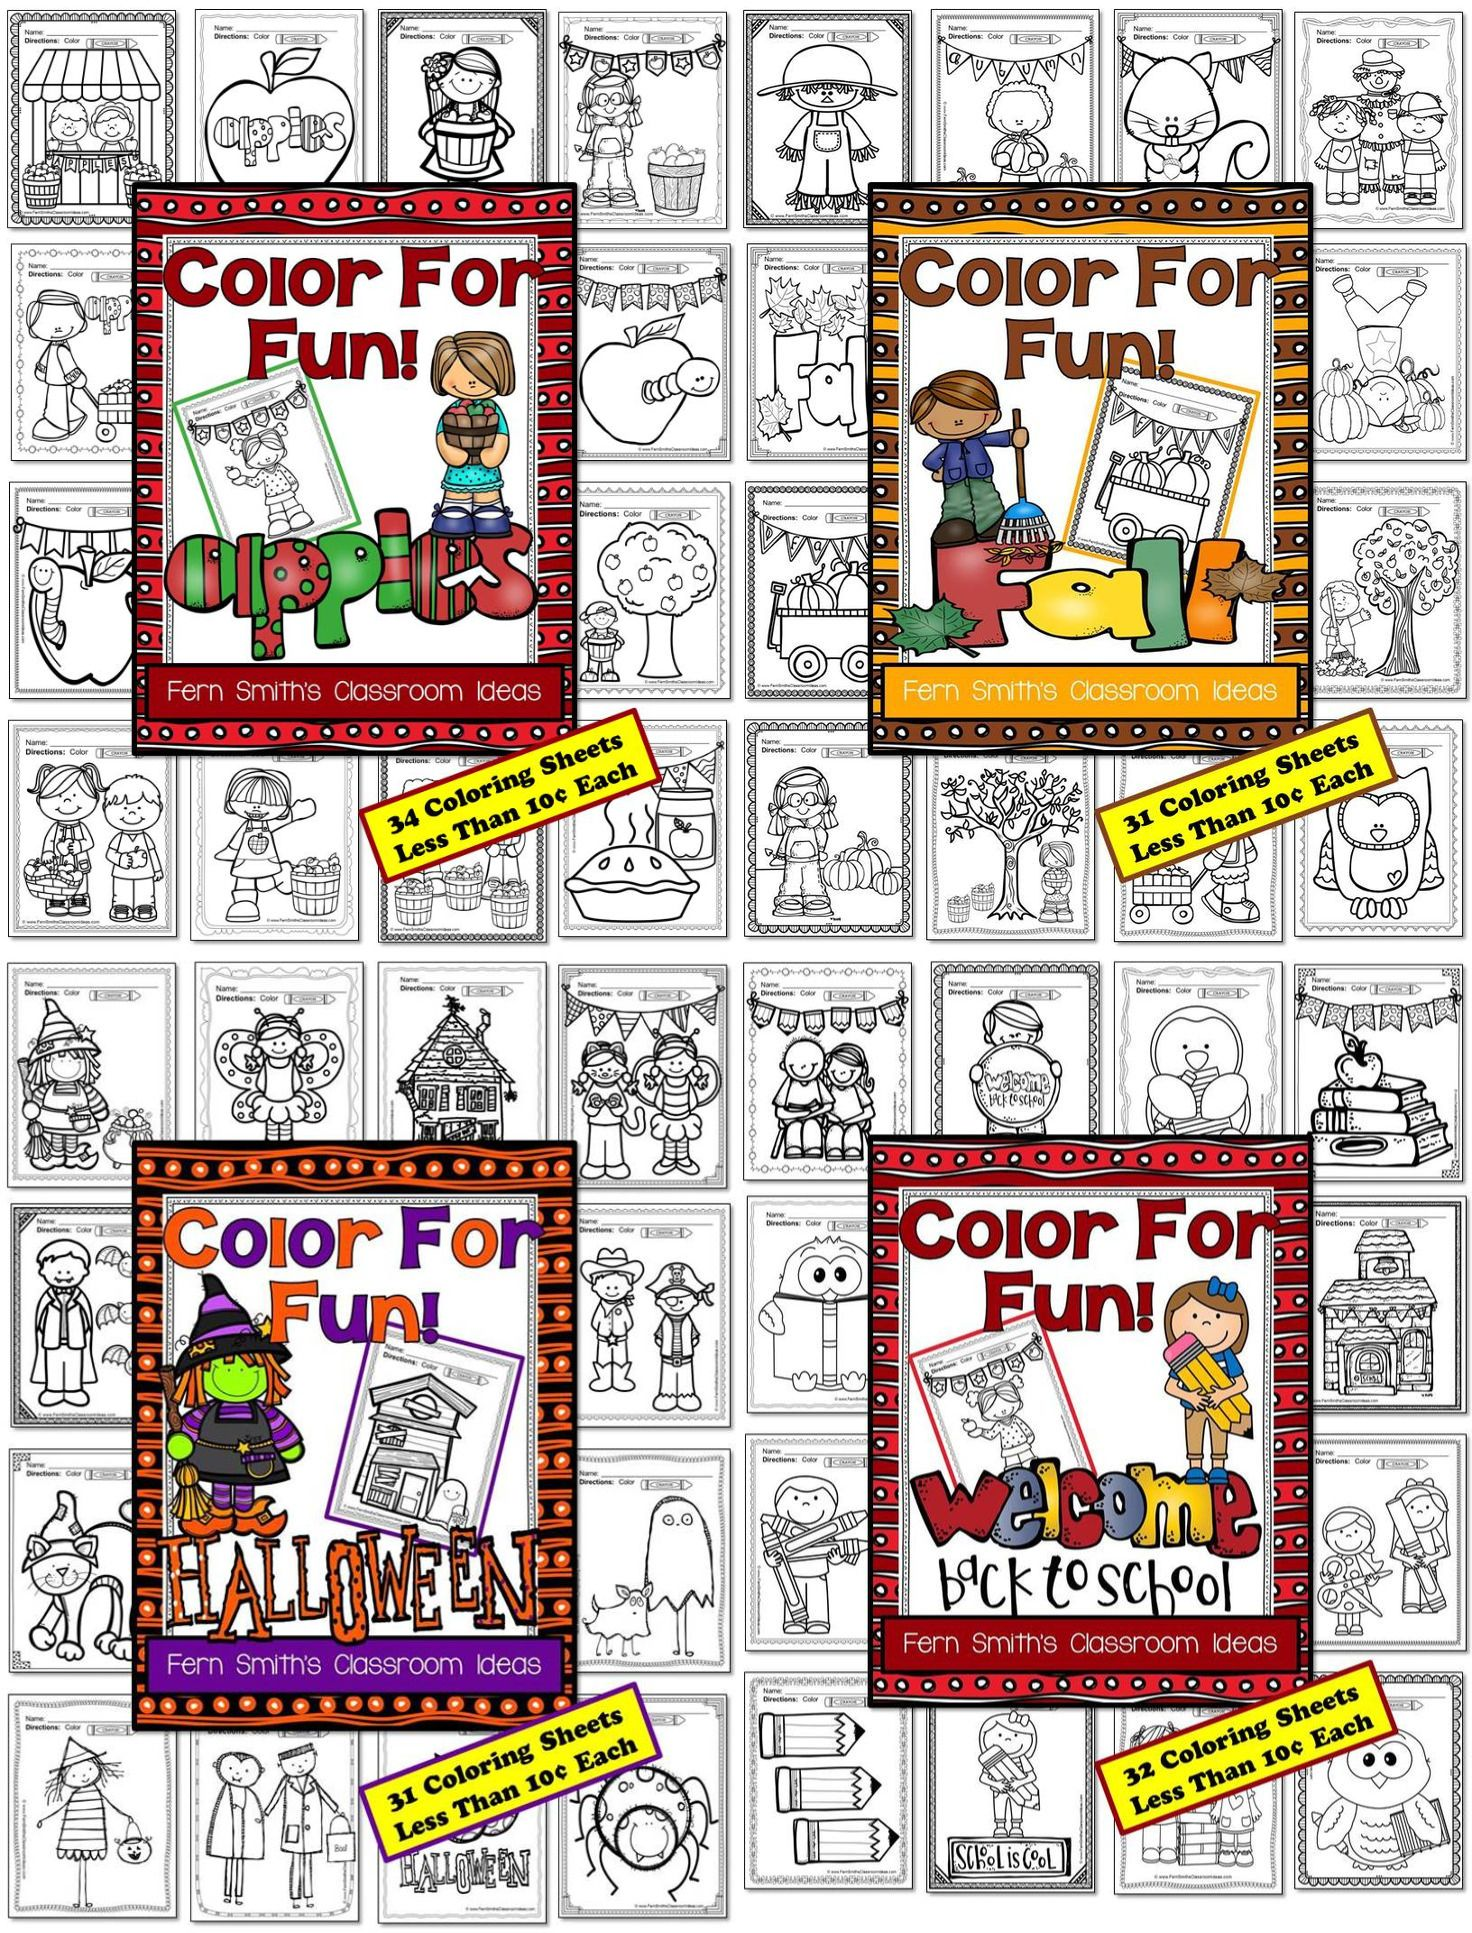 Fall coloring pages a four pack coloring book bundle